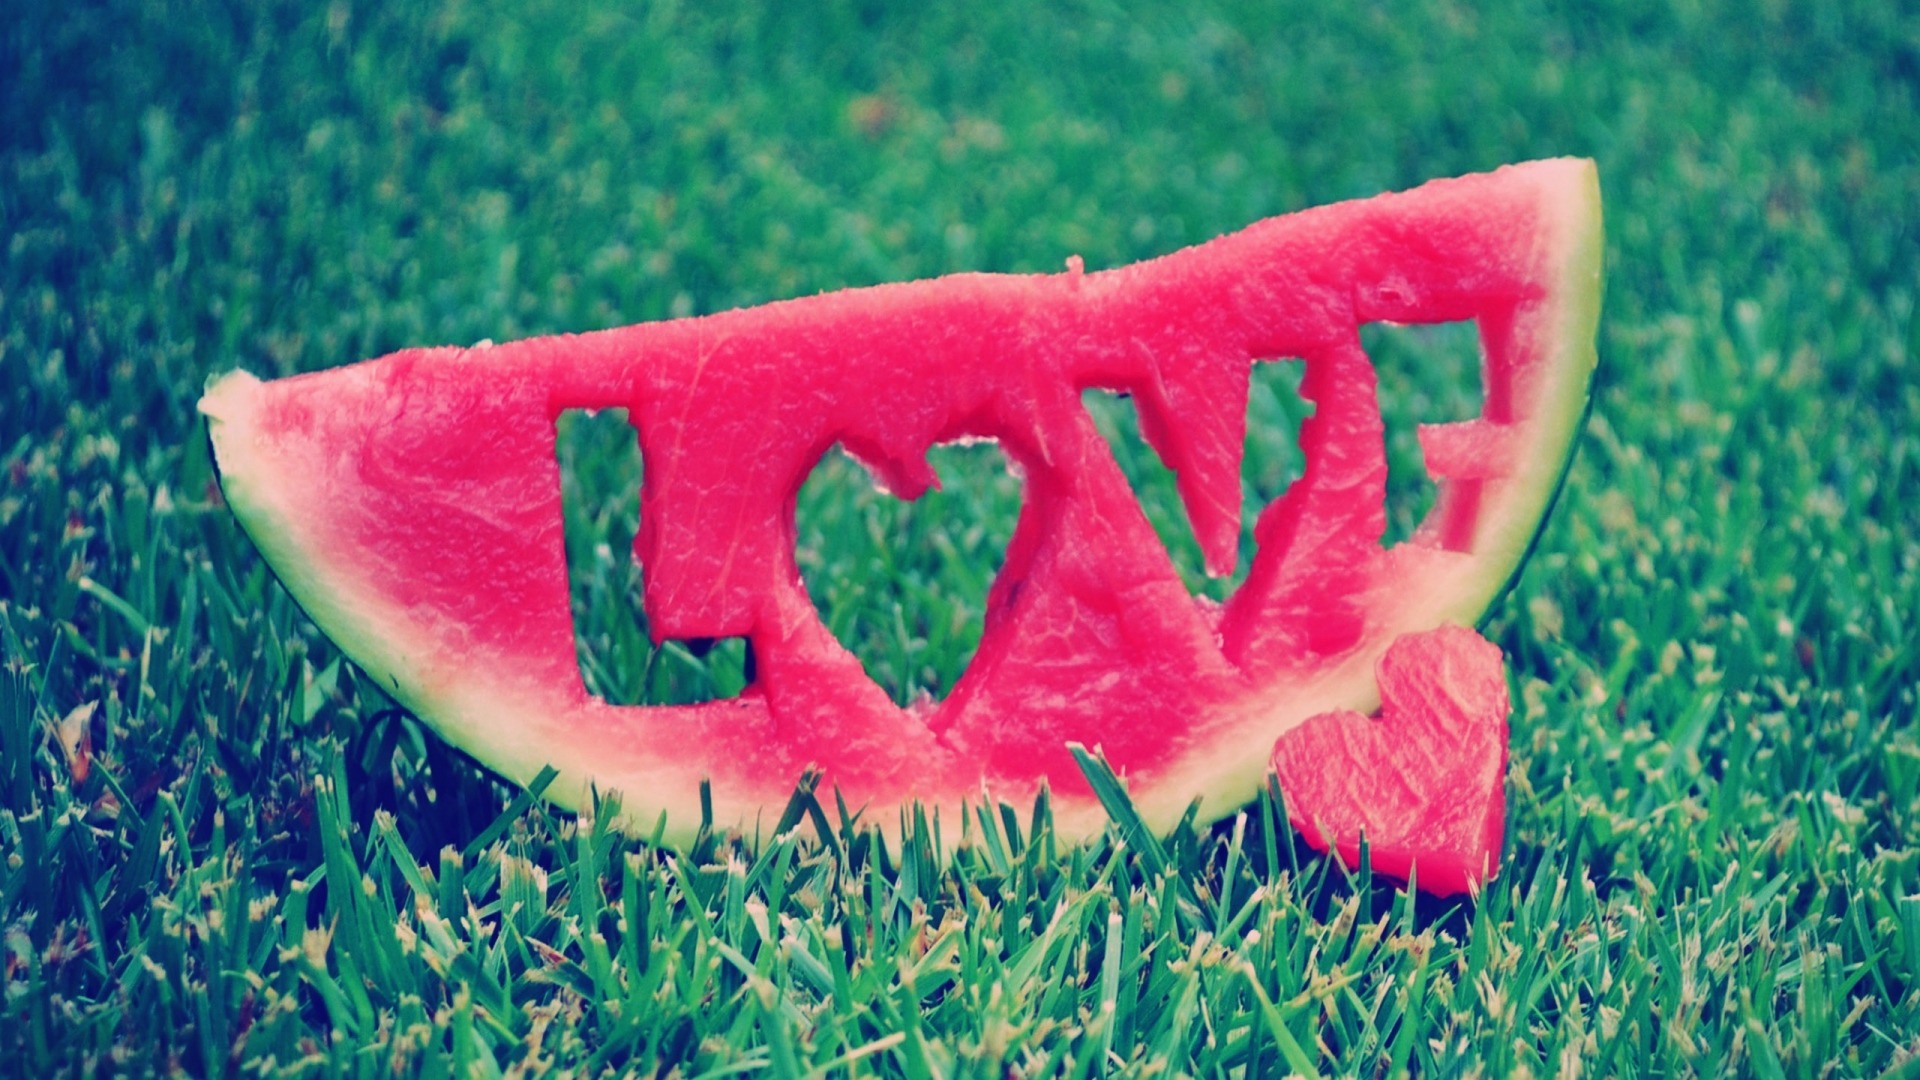 cool-love-hd-wallpapers-background.jpg